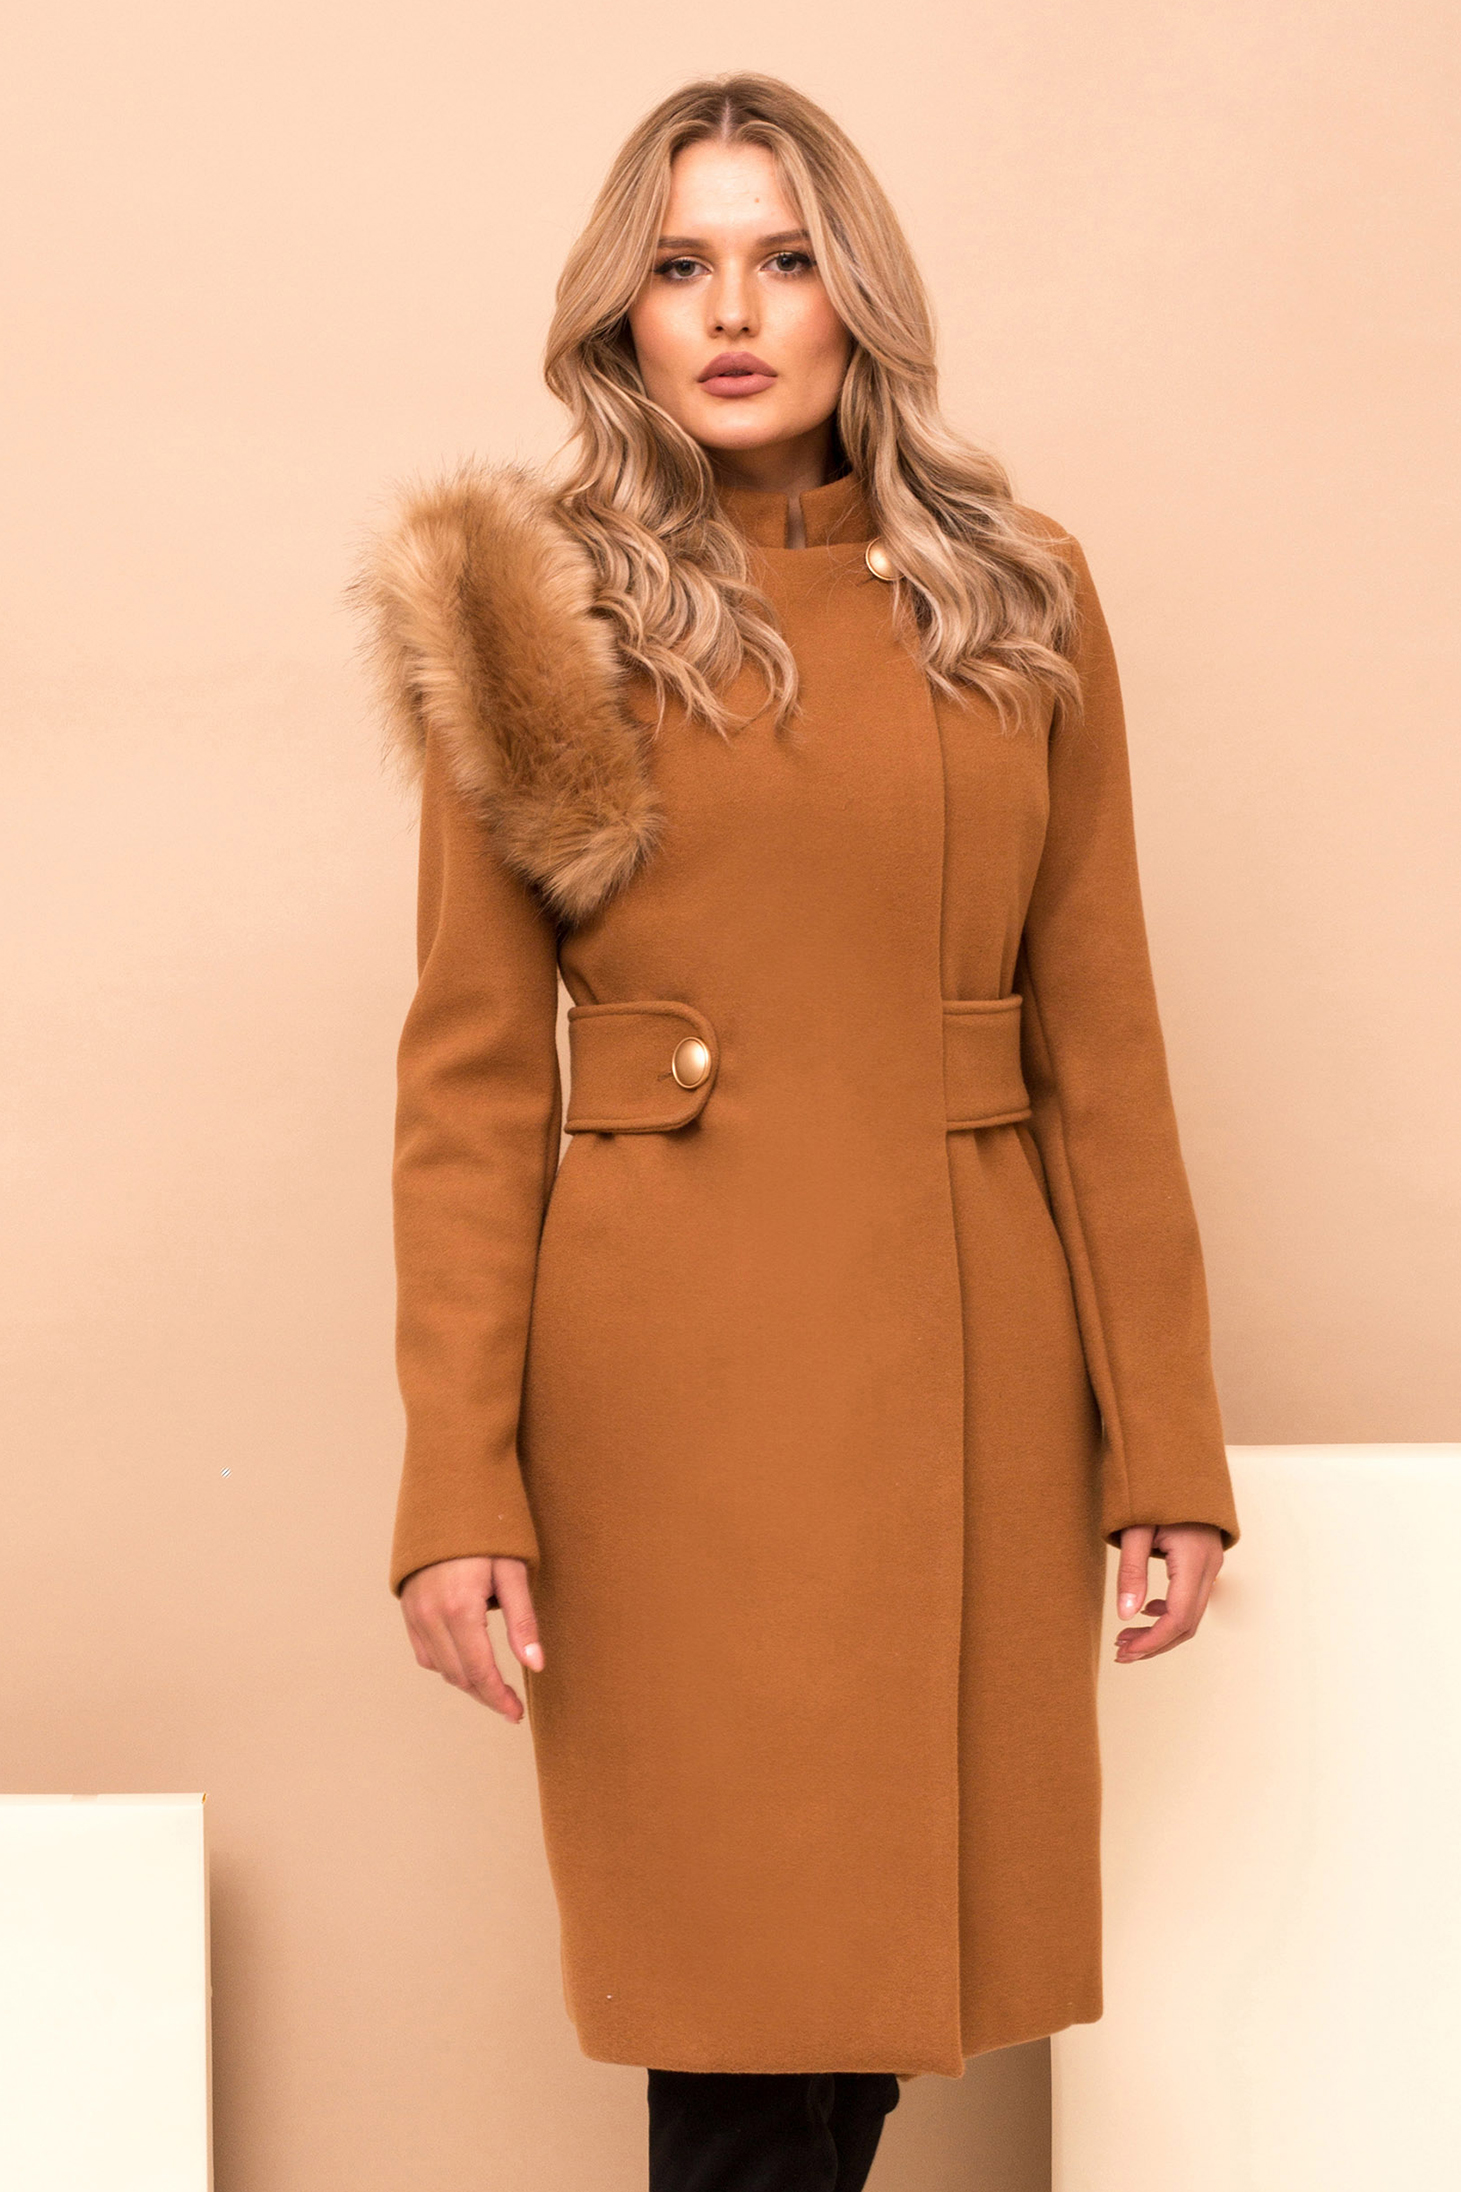 Coat brown cloth with faux fur details accessorized with tied waistband